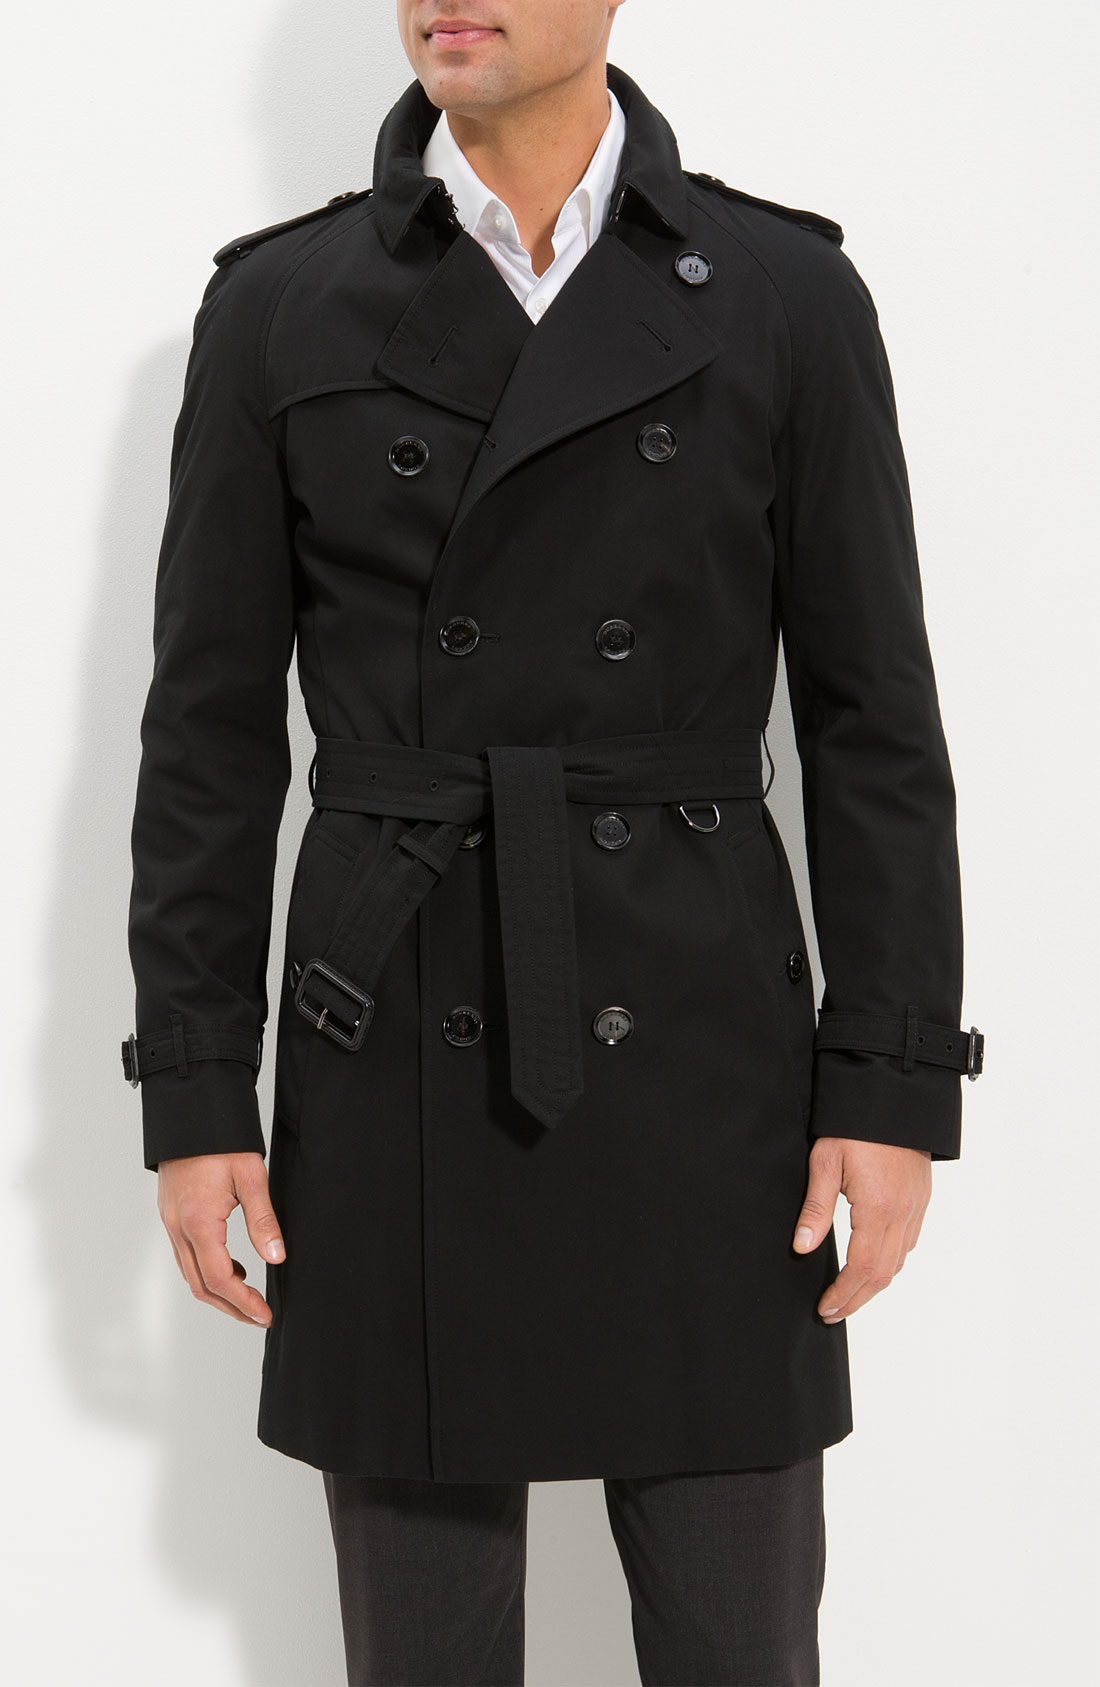 Stay prepared for whatever weather by stepping out in this trench coat that ties at the waist for a flattering fit.